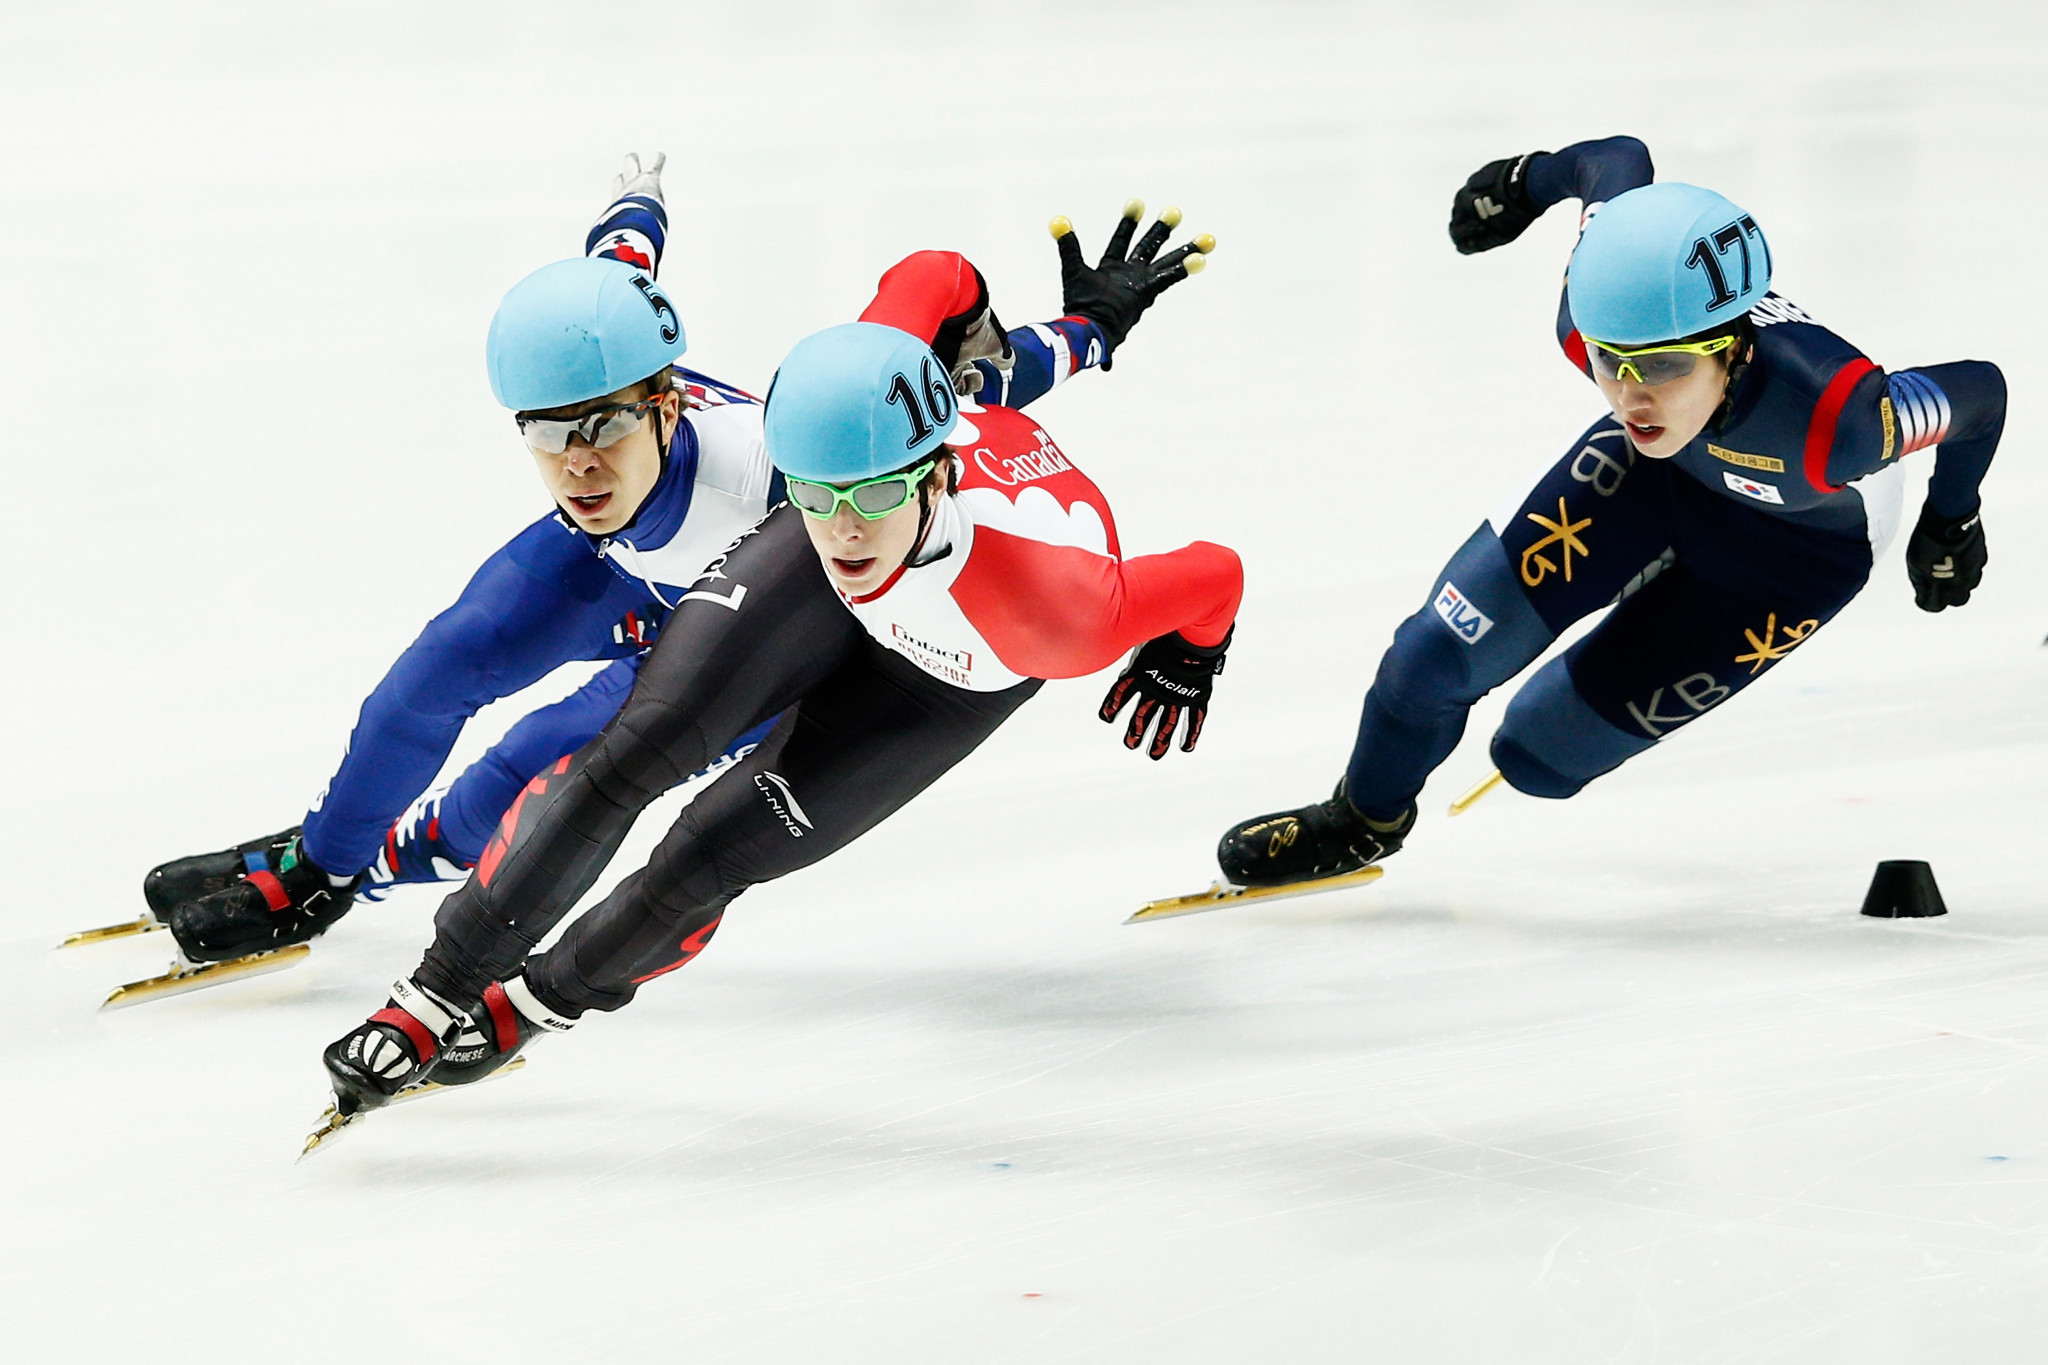 Park and Schulting secure overall 1,500m titles at ISU Short Track World Cup